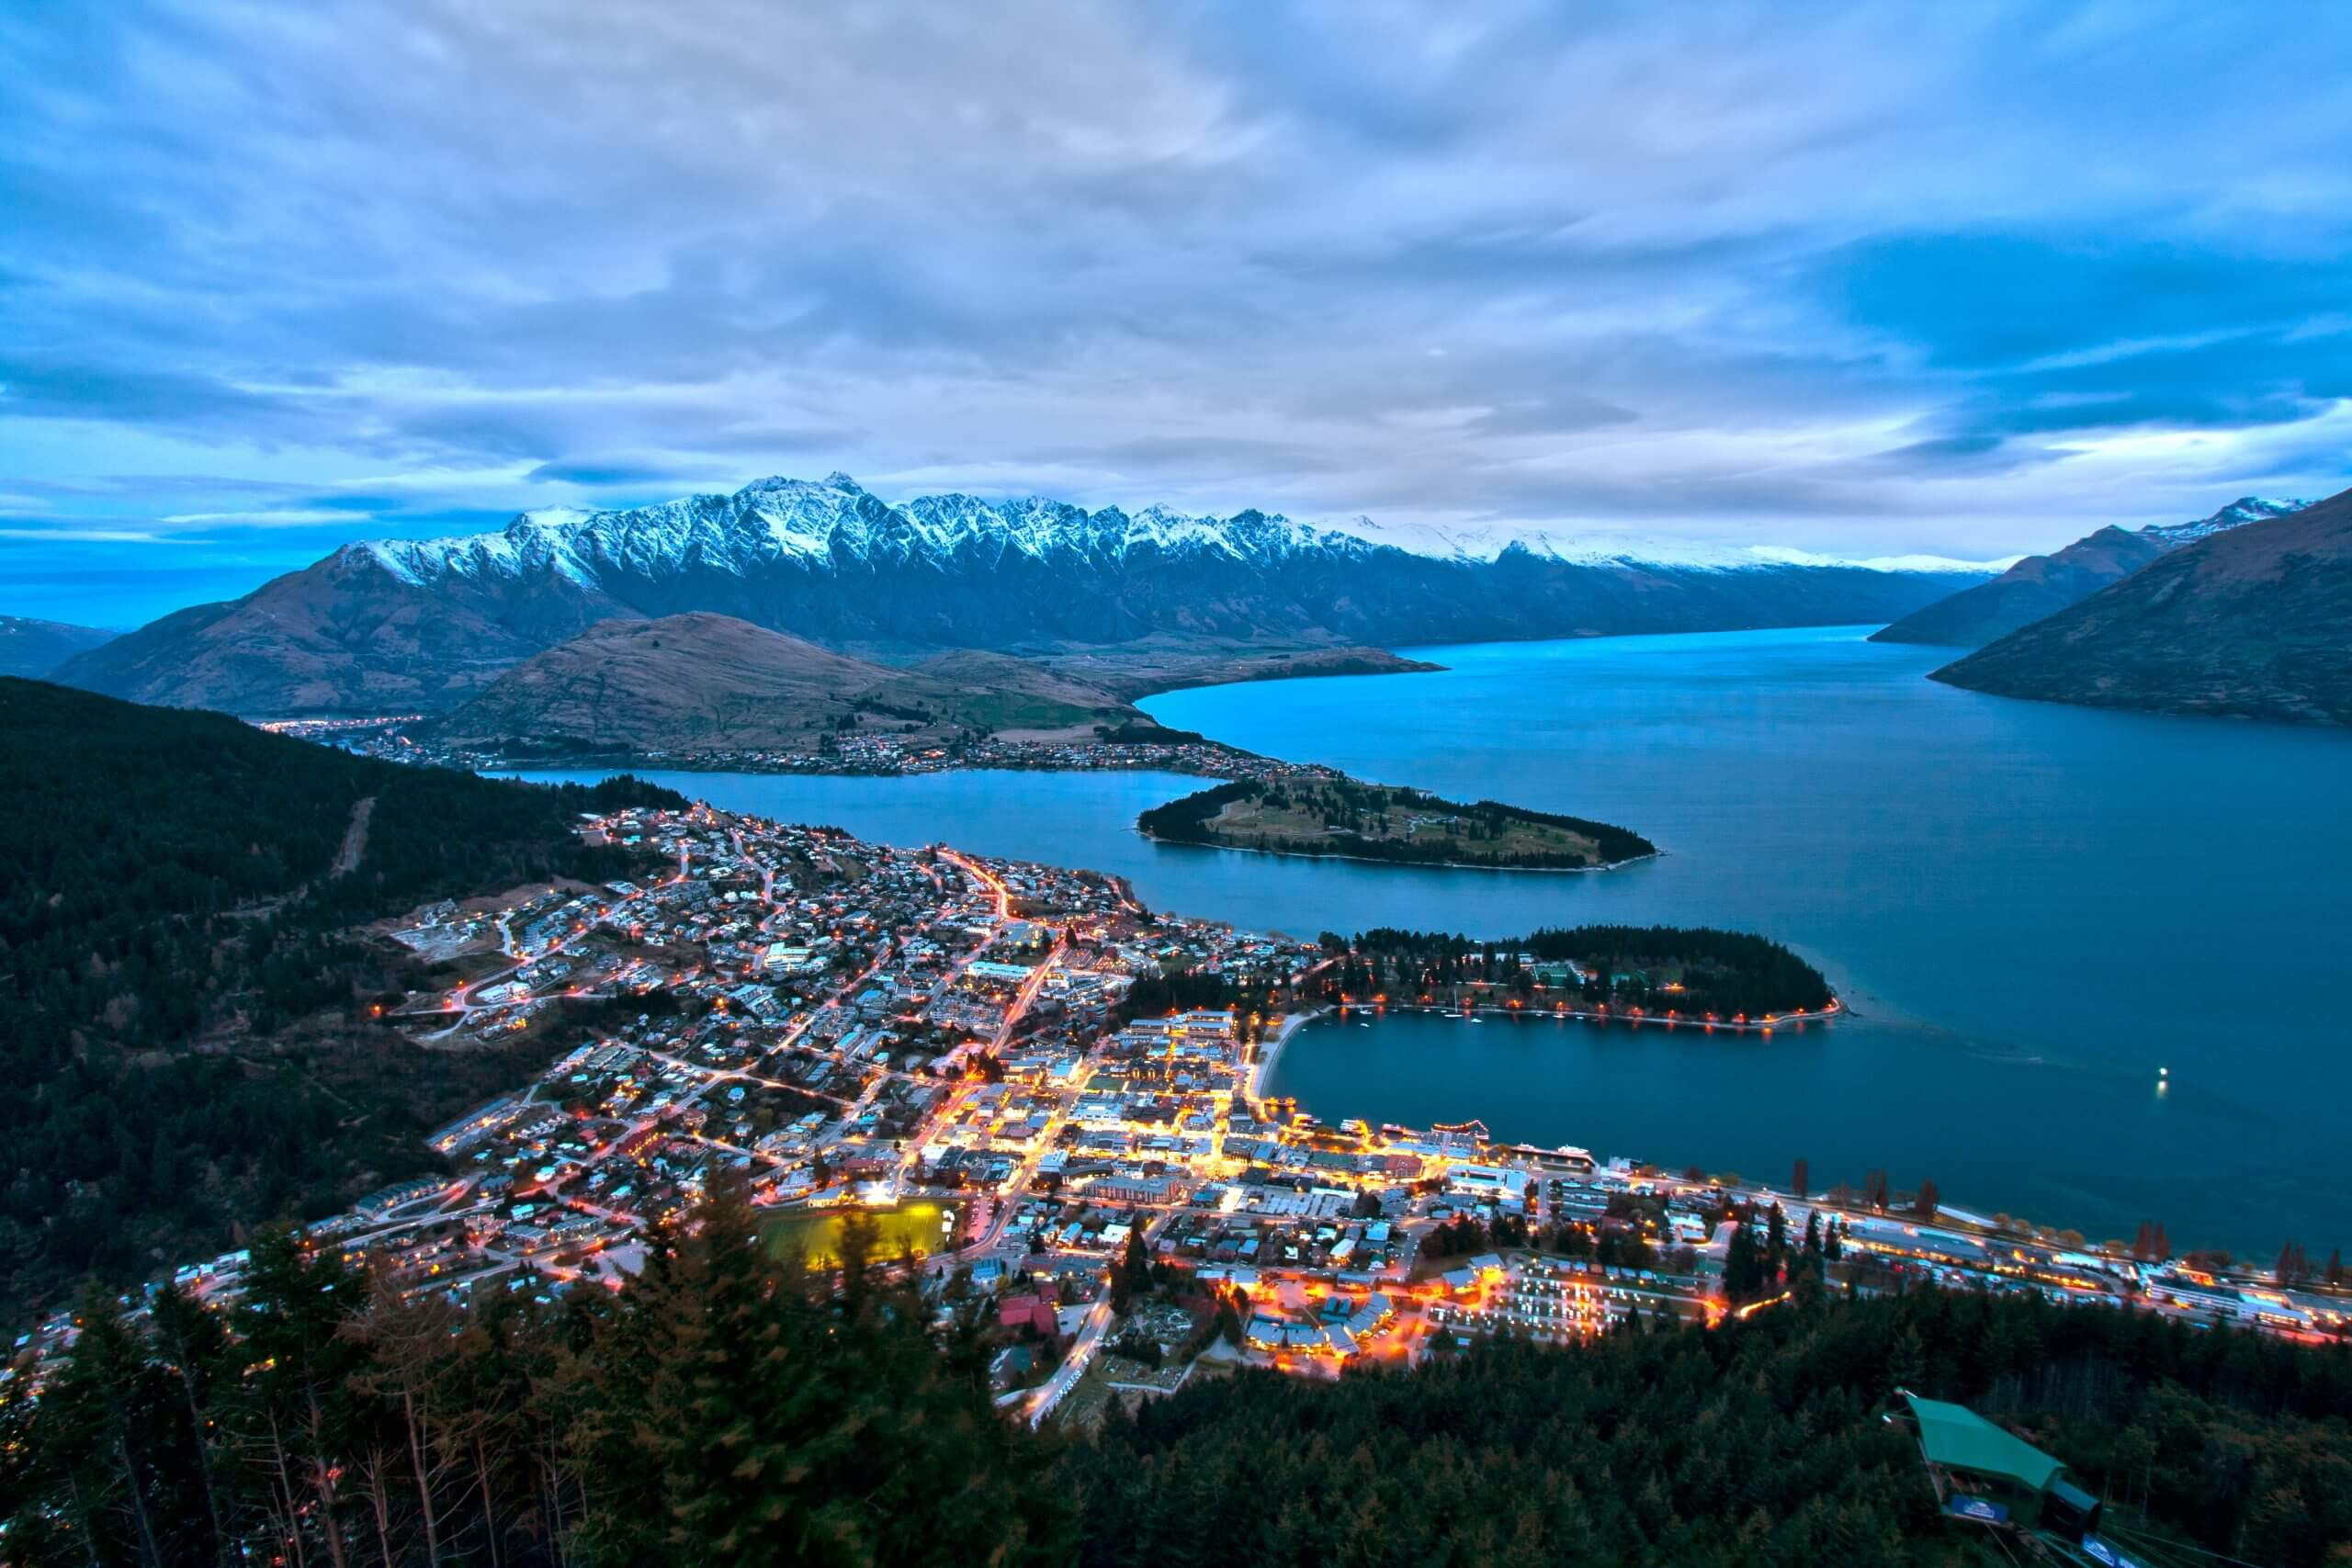 The New Zealand Casino Officially Removed Social Isolation Measures